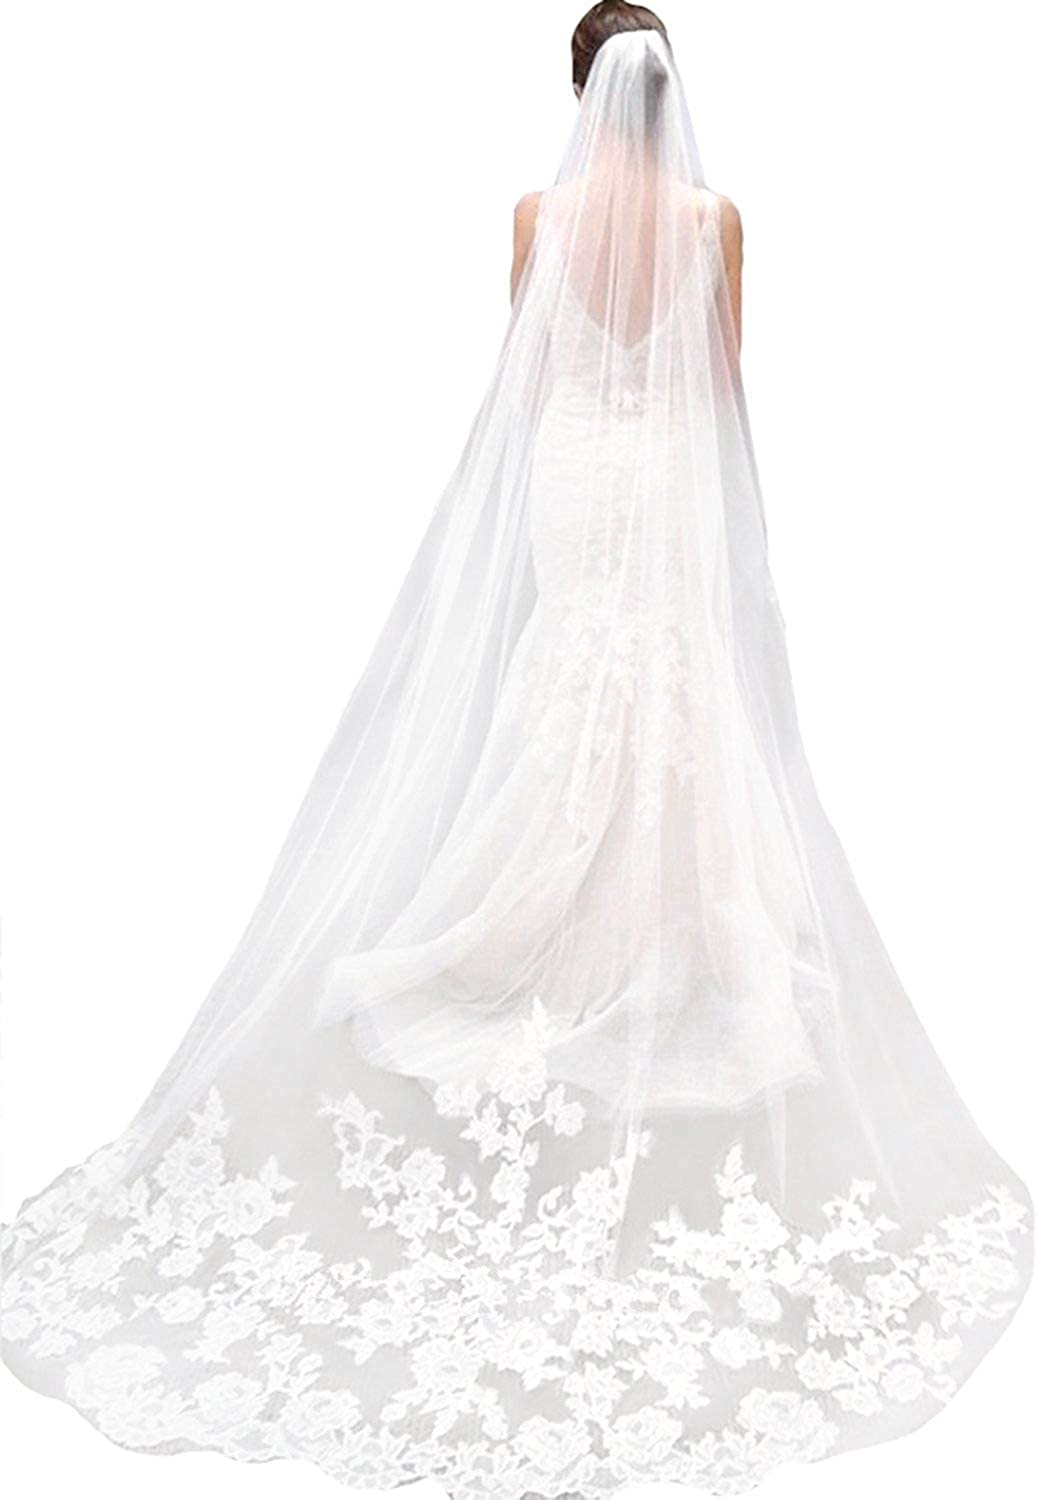 New Crystals Edge Veil Cathedral Length Fingertip Length Wedding Veil Wedding Veil Regal Length Veil Royal Length Wedding Veil